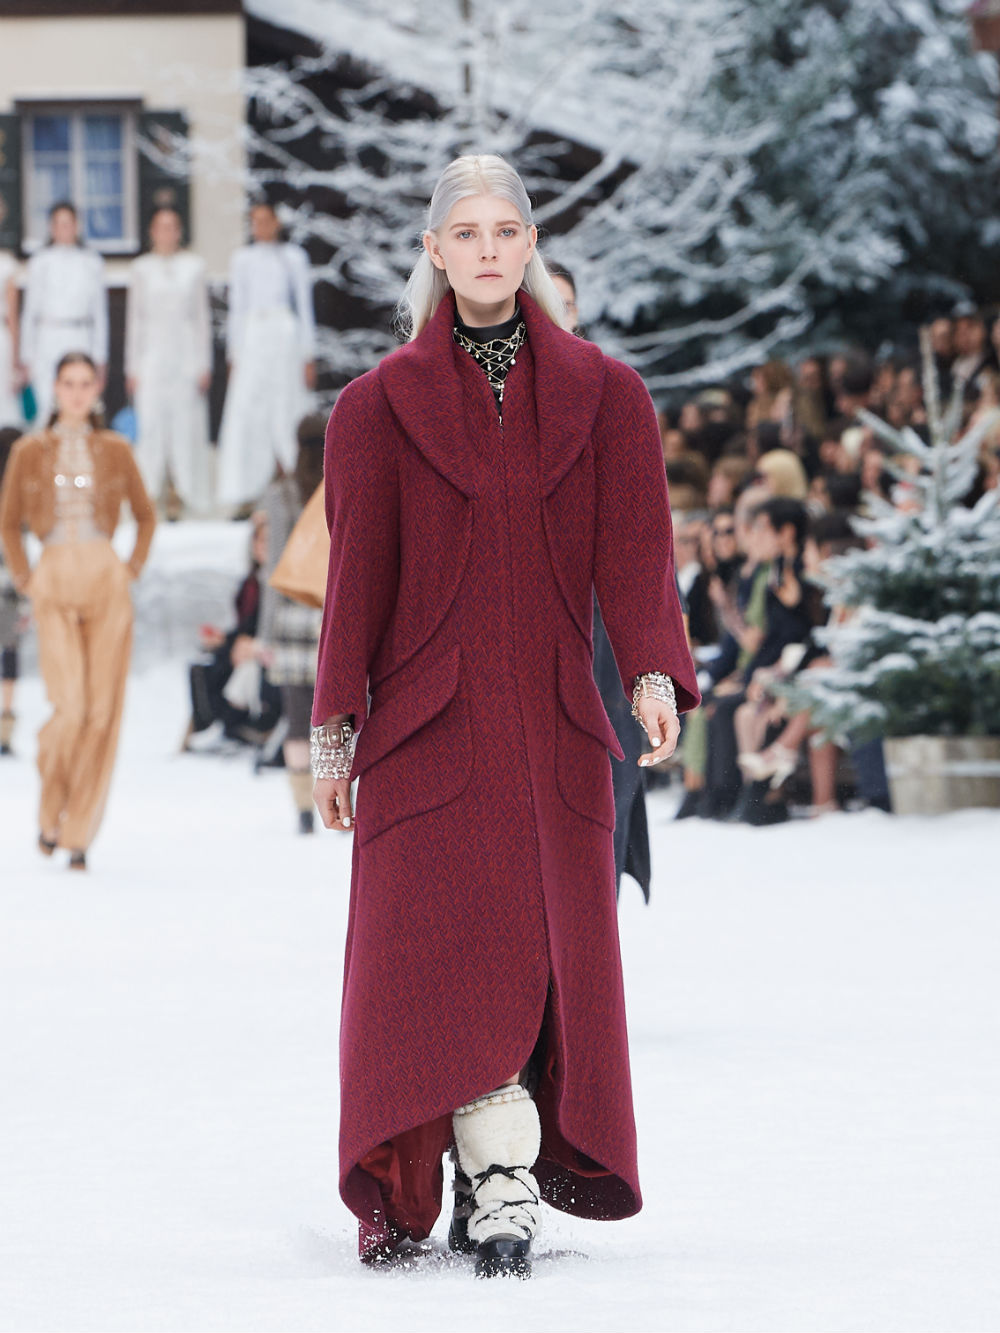 FALL-WINTER 201920 READY-TO-WEAR COLLECTION (27)